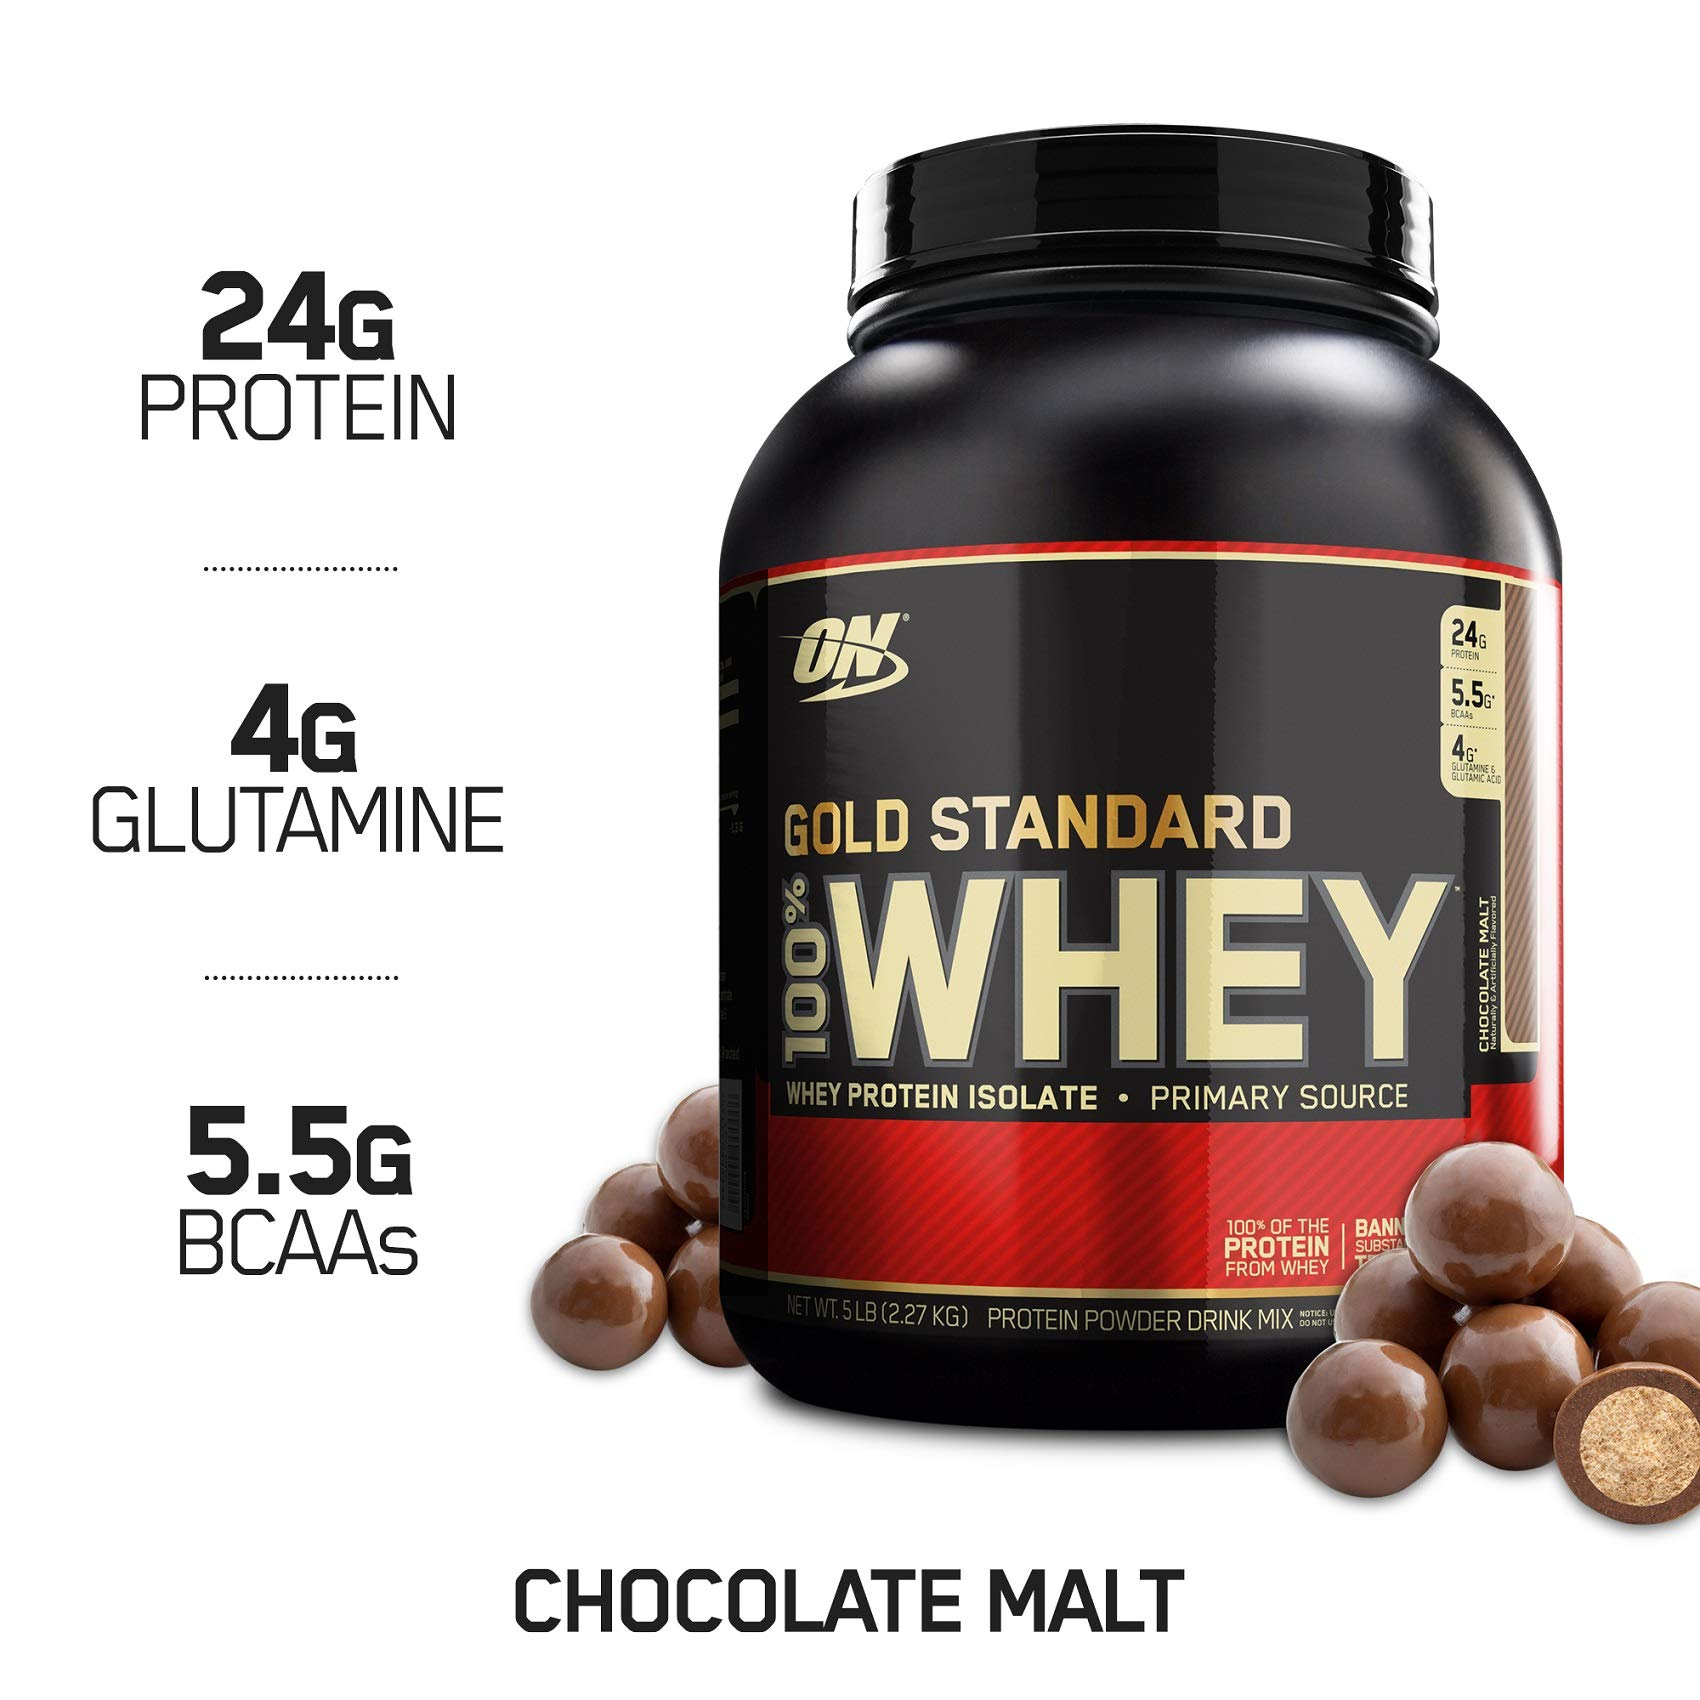 Optimum Nutrition Gold Standard 100% Whey Protein Powder, Chocolate Malt, 5 Pound by Optimum Nutrition